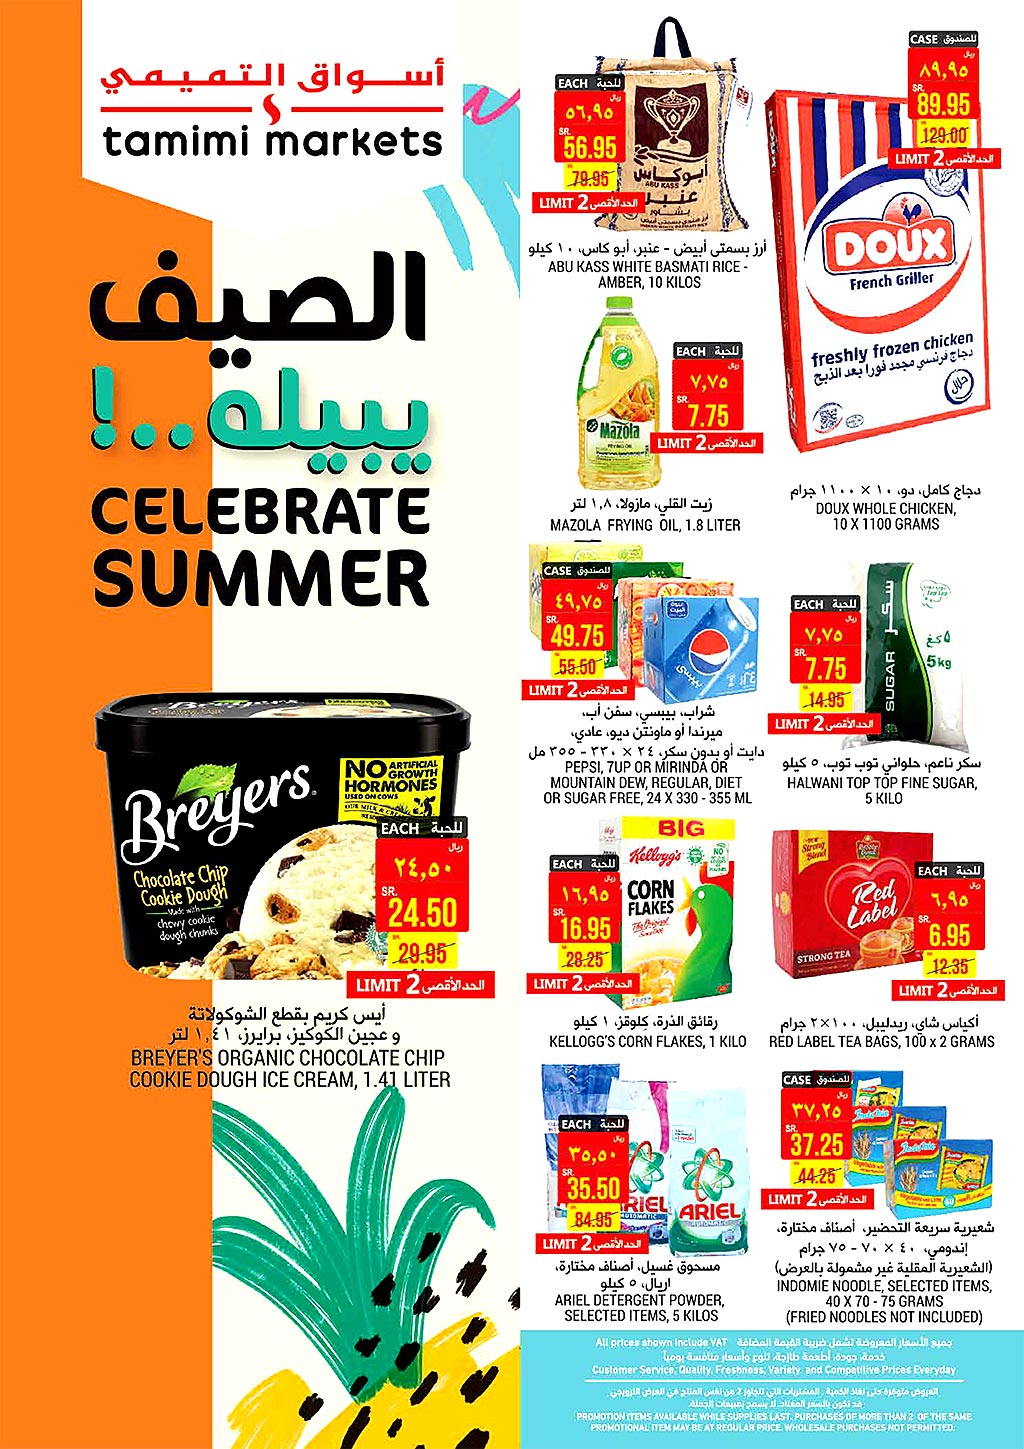 al-tamimi offers from 18july to 24july 2019 page number 1 عروض أسواق التميمي من 18 يوليو حتى 24 يوليو 2019 صفحة رقم 1